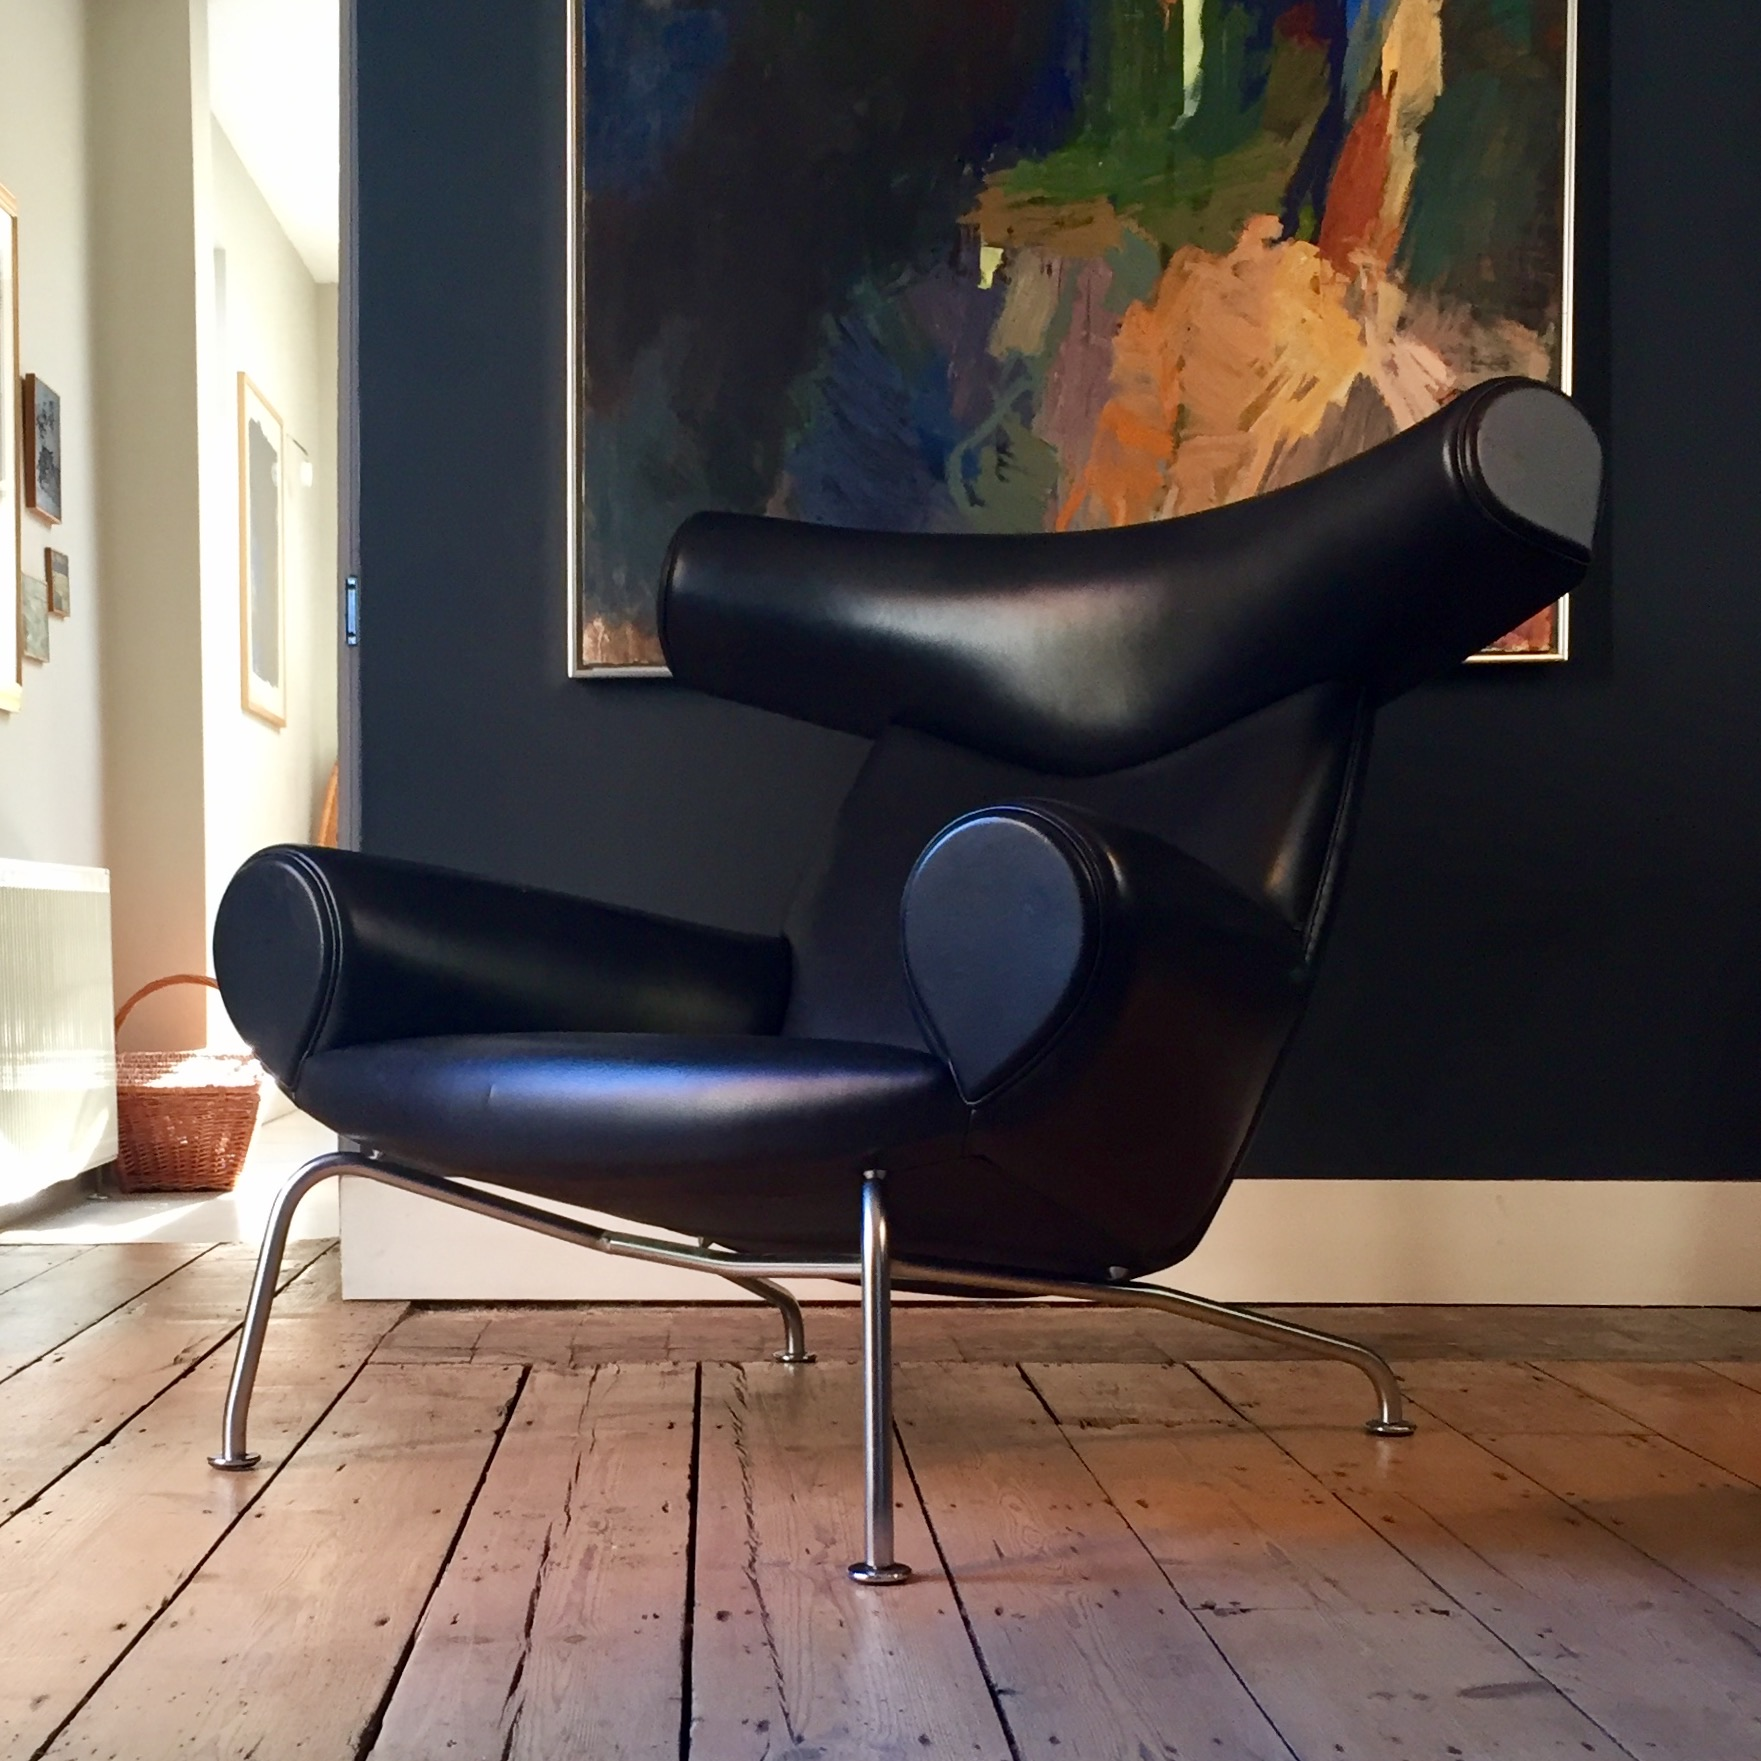 The OX chair by Wegner